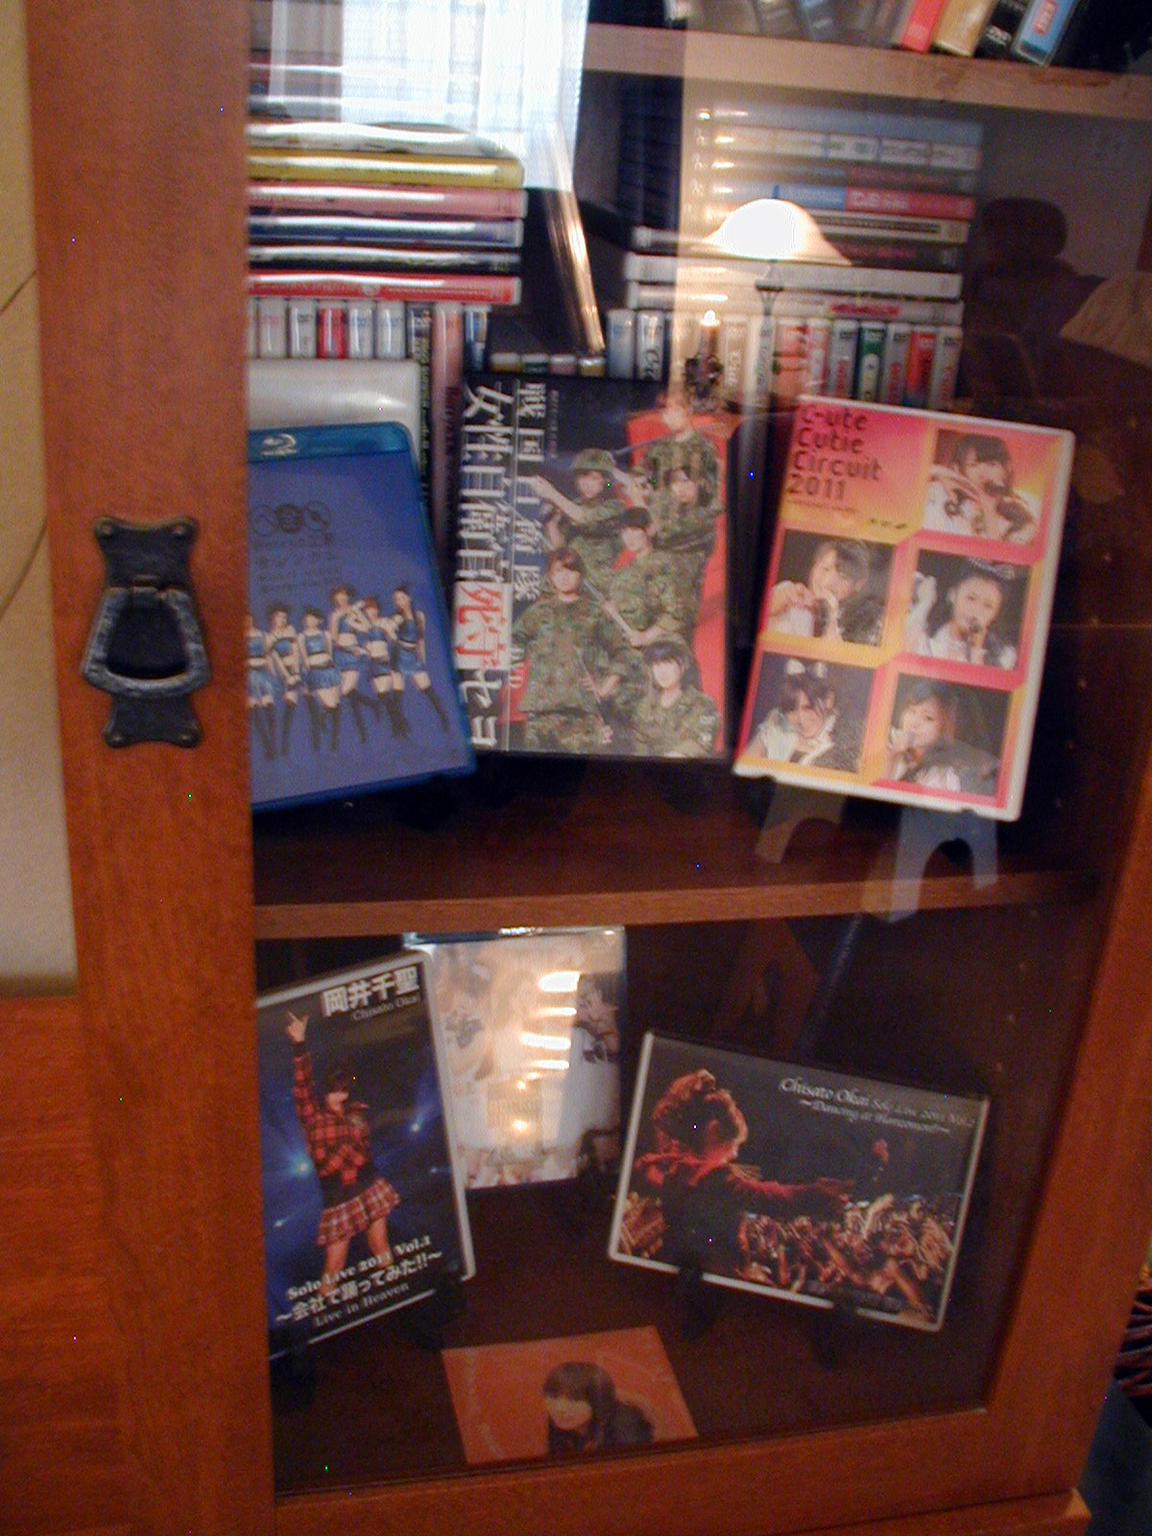 Closeup of family room display of DVD's and BluRay's